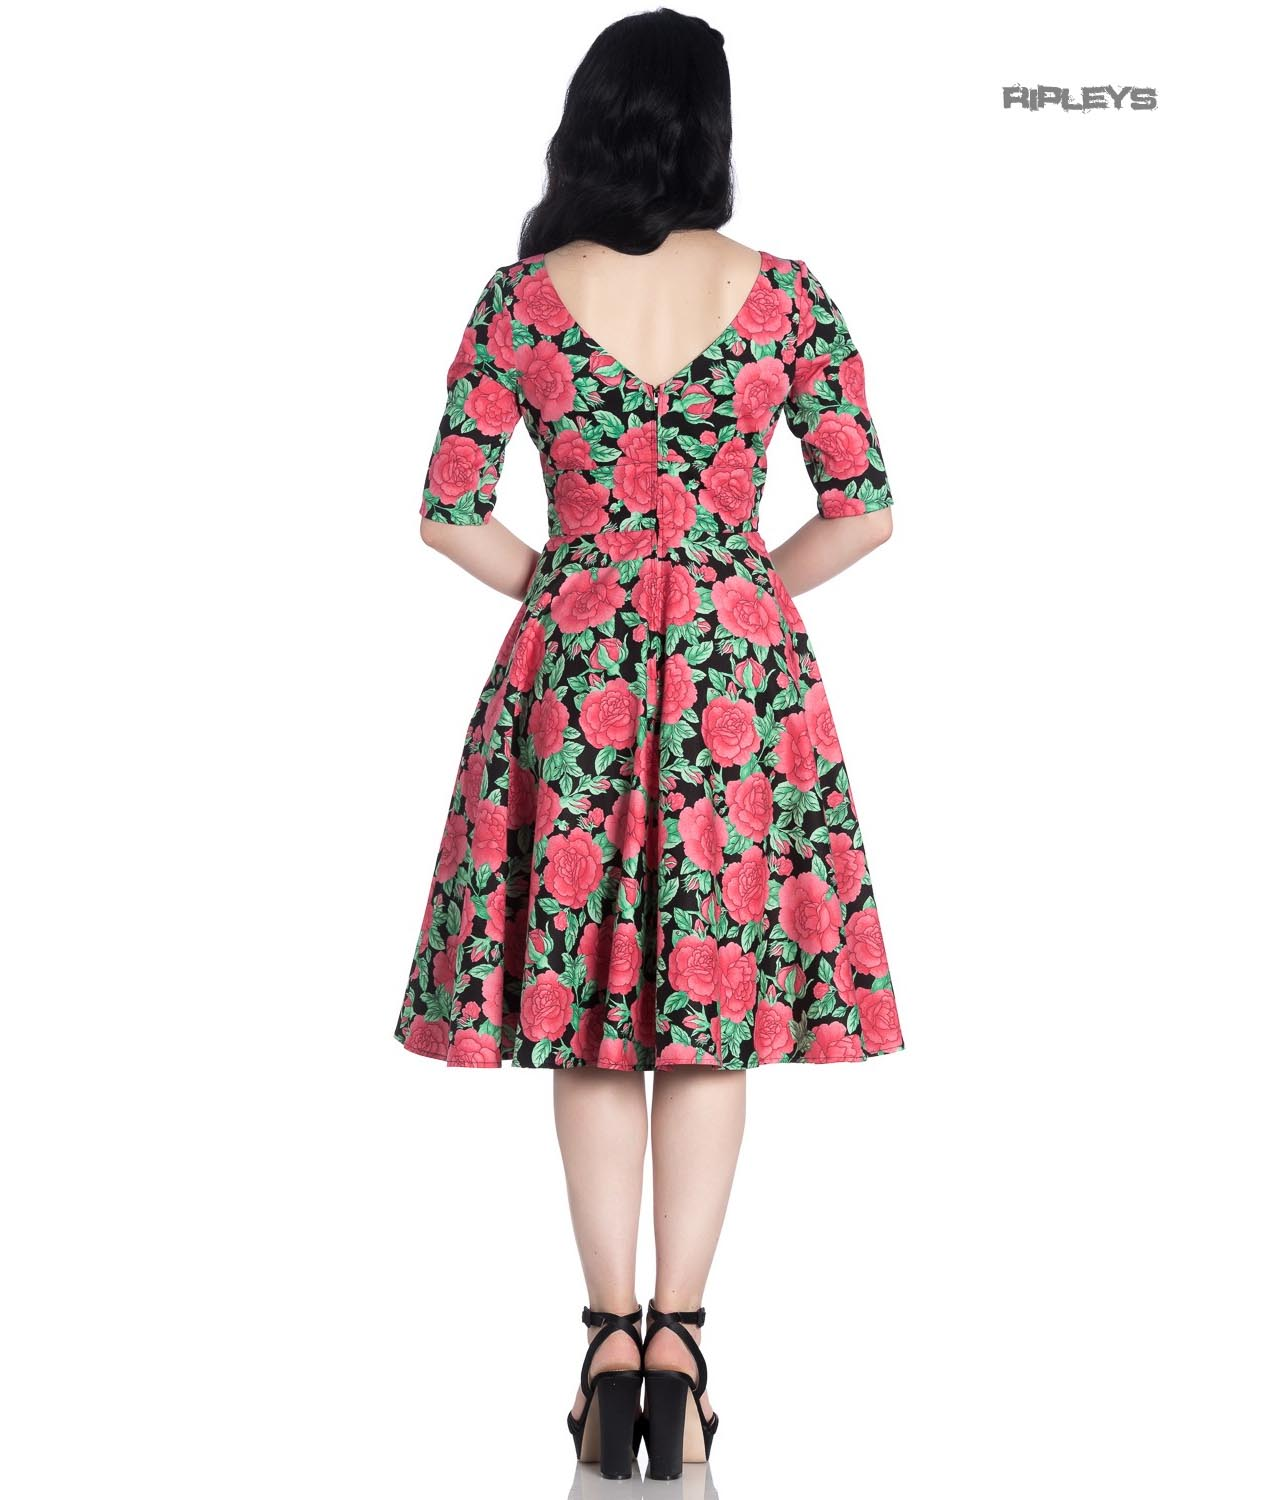 Hell-Bunny-40s-50s-Black-Pin-Up-Vintage-Dress-DARCY-Pink-Roses-All-Sizes thumbnail 8